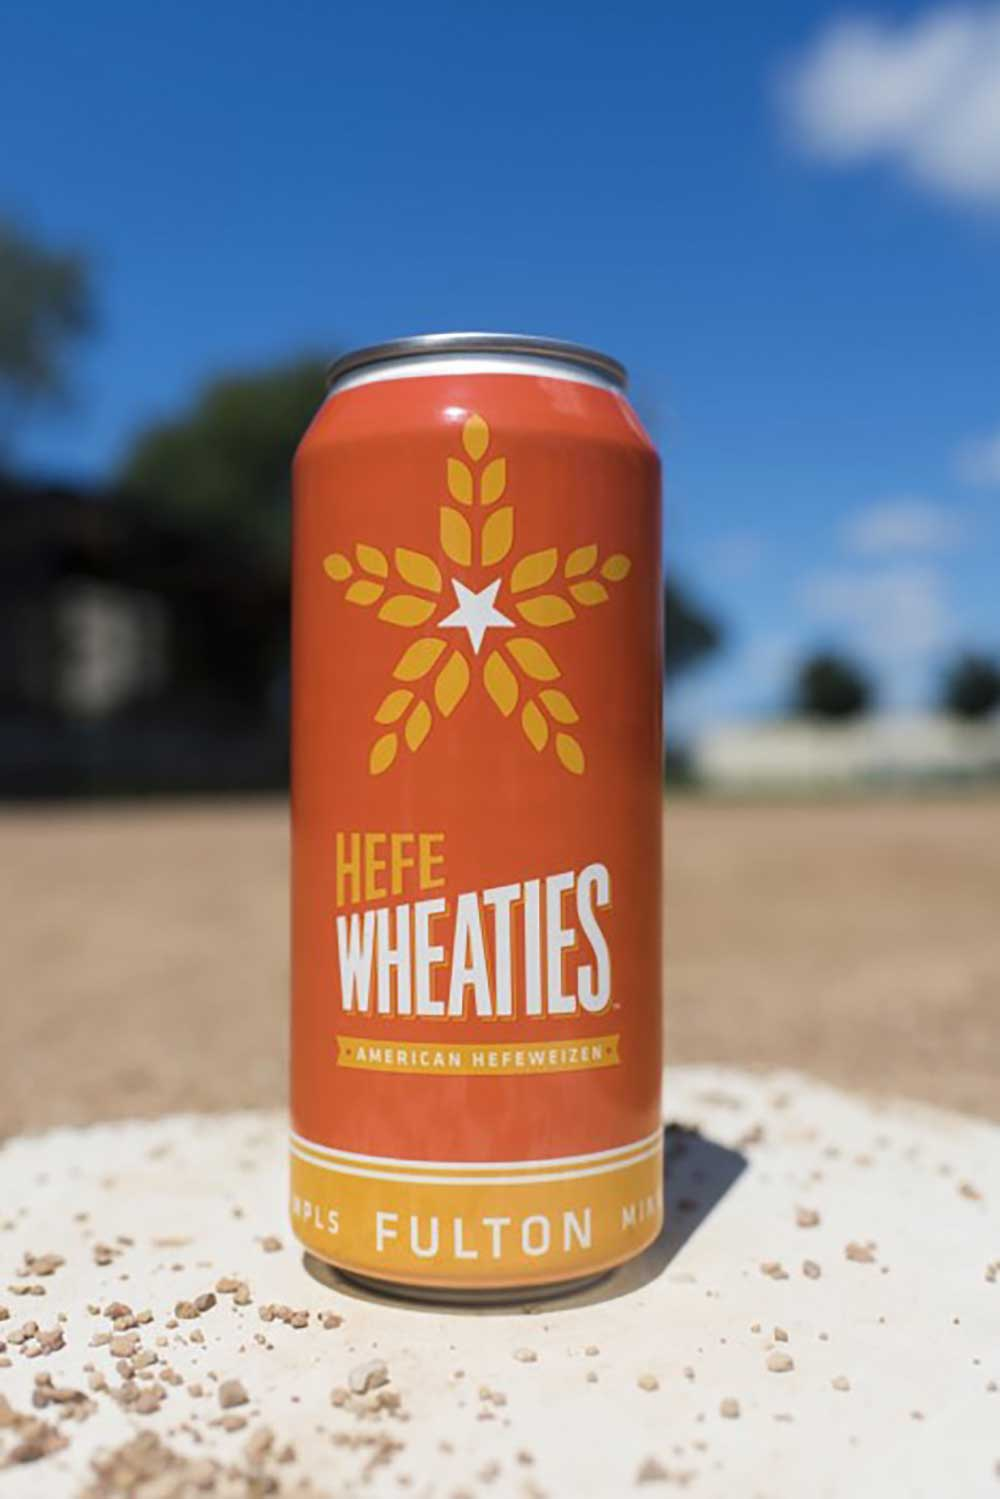 Hefe-Wheaties-Can